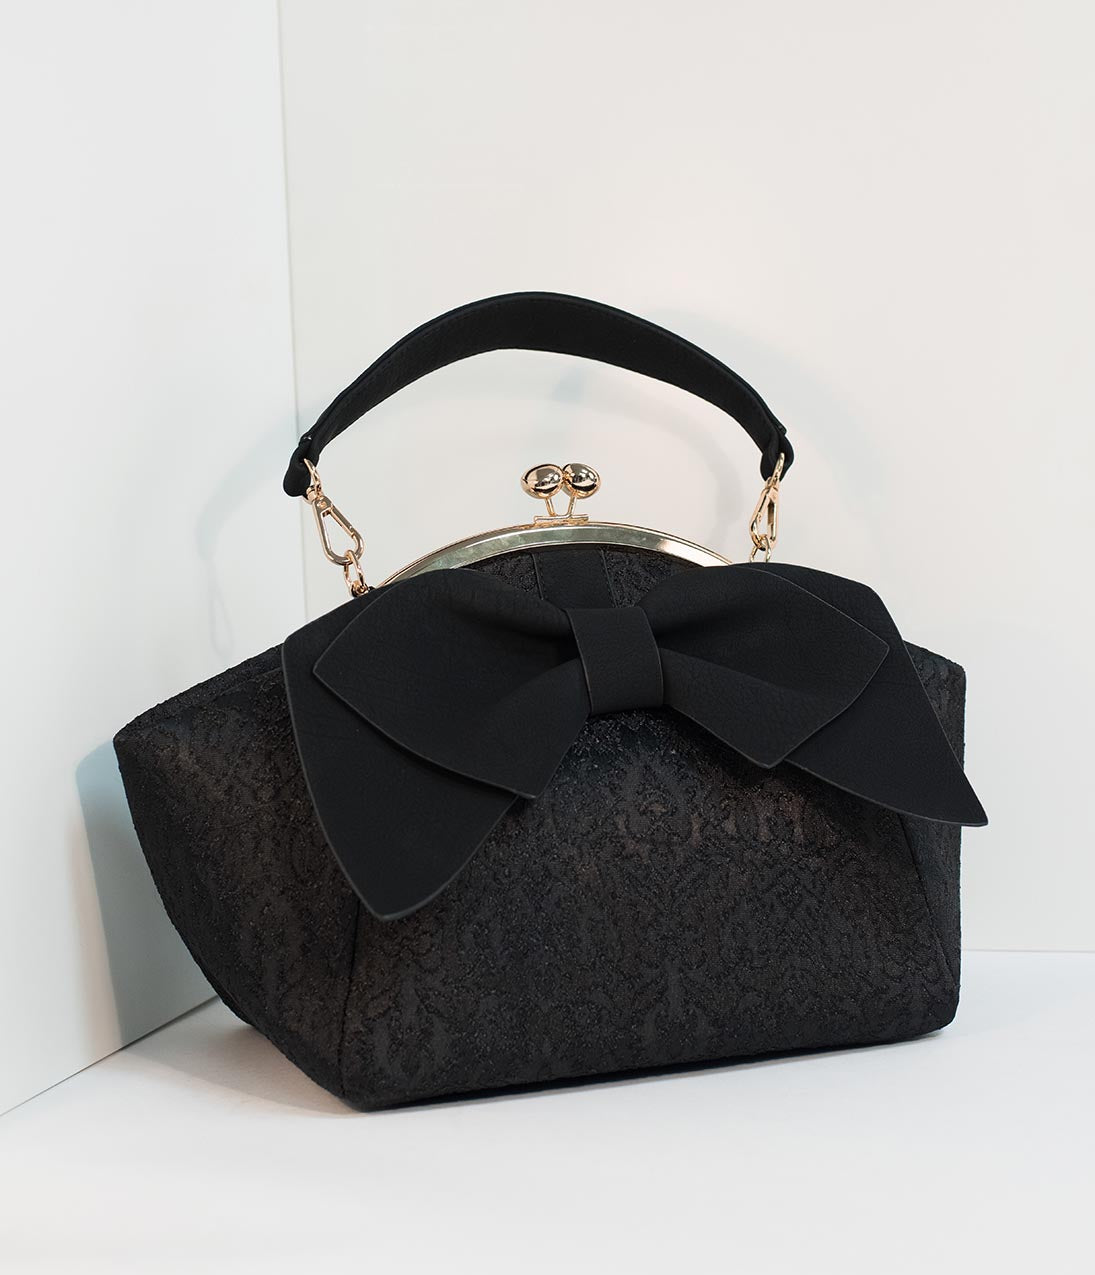 1950s Handbags, Purses, and Evening Bag Styles Black Embroidered  Large Bow Frame Handbag $52.00 AT vintagedancer.com